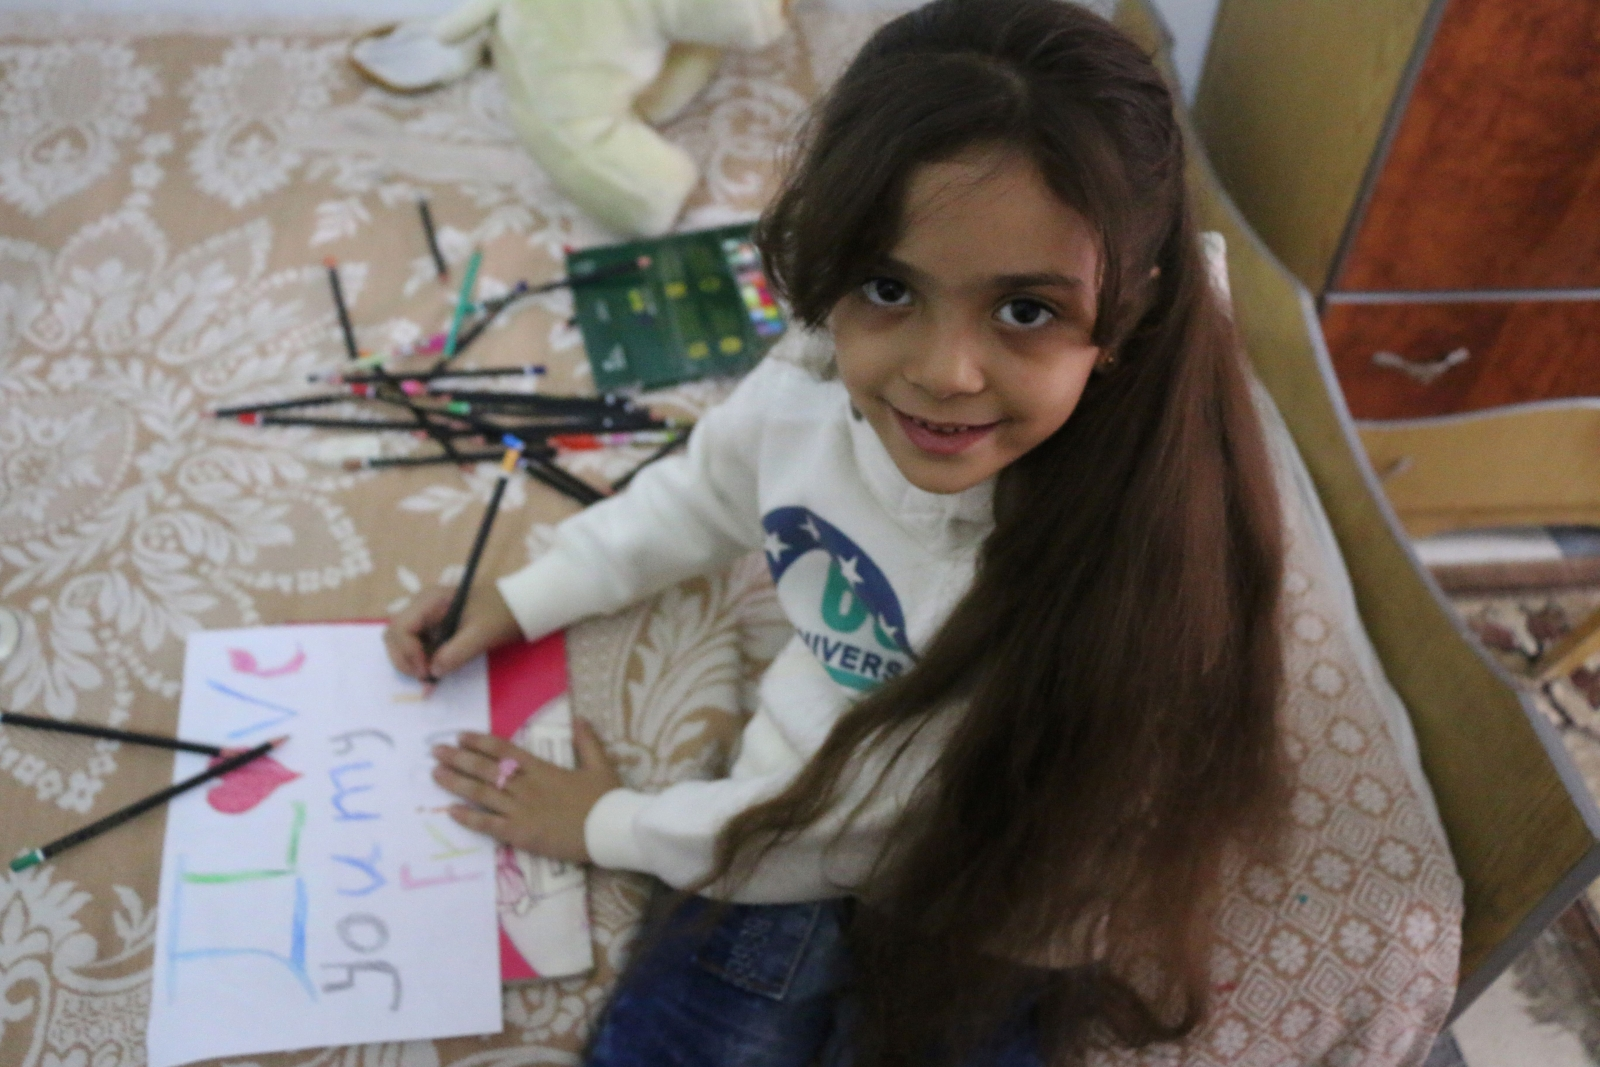 7-year-old Syrian Twitter girl Bana evacuated from Aleppo